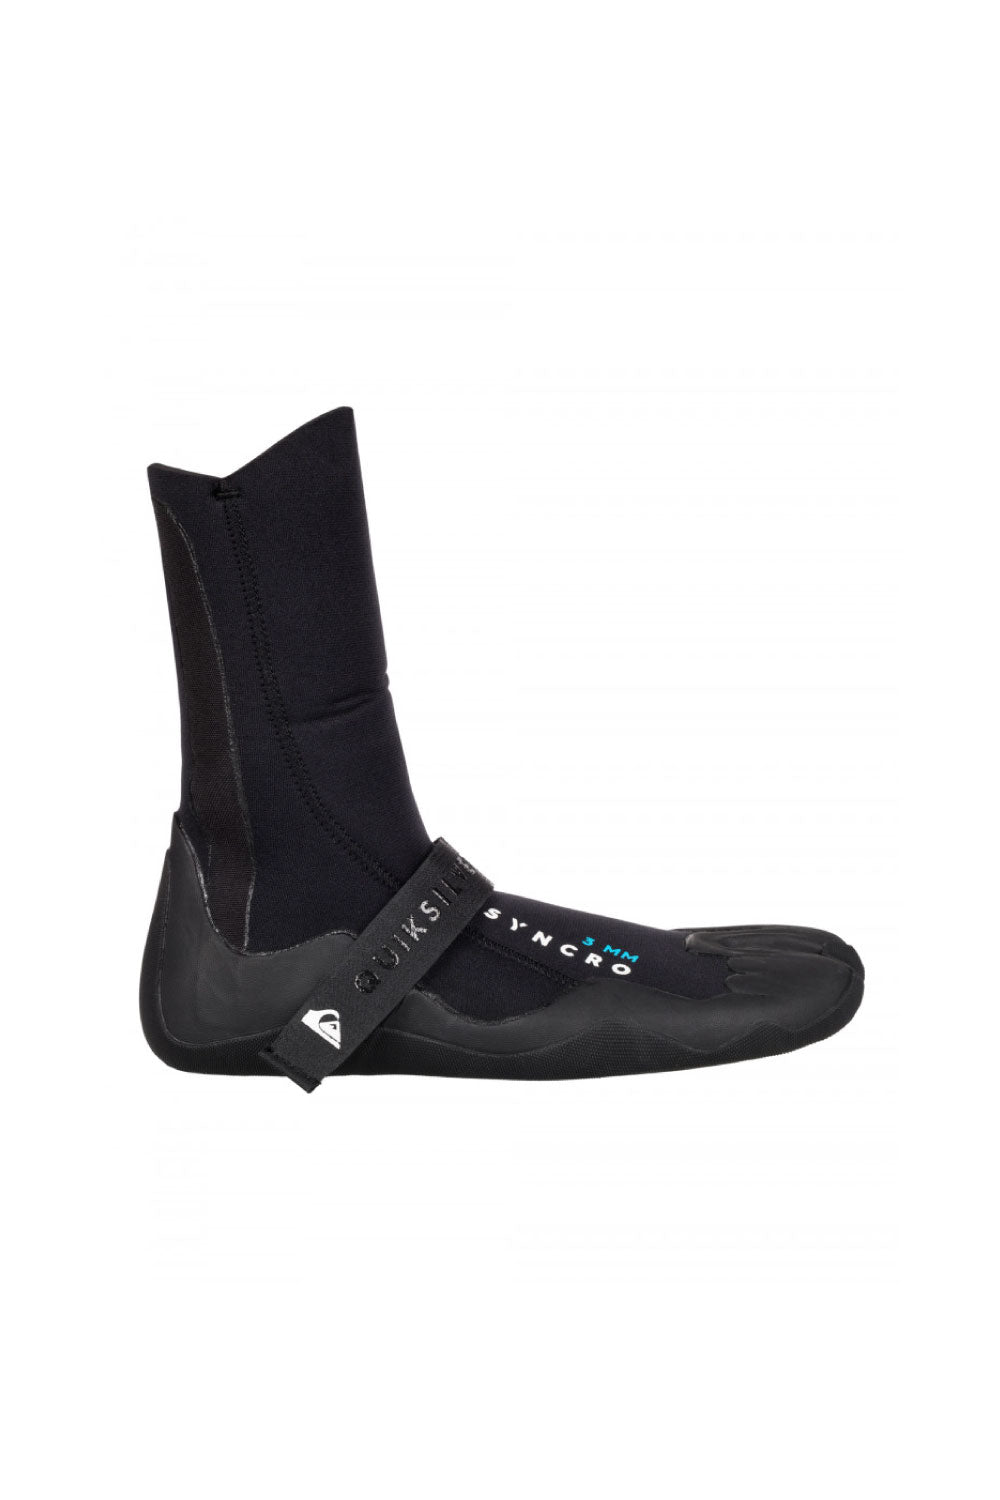 Quiksilver Syncro Split Toe 3mm Surfing Booties